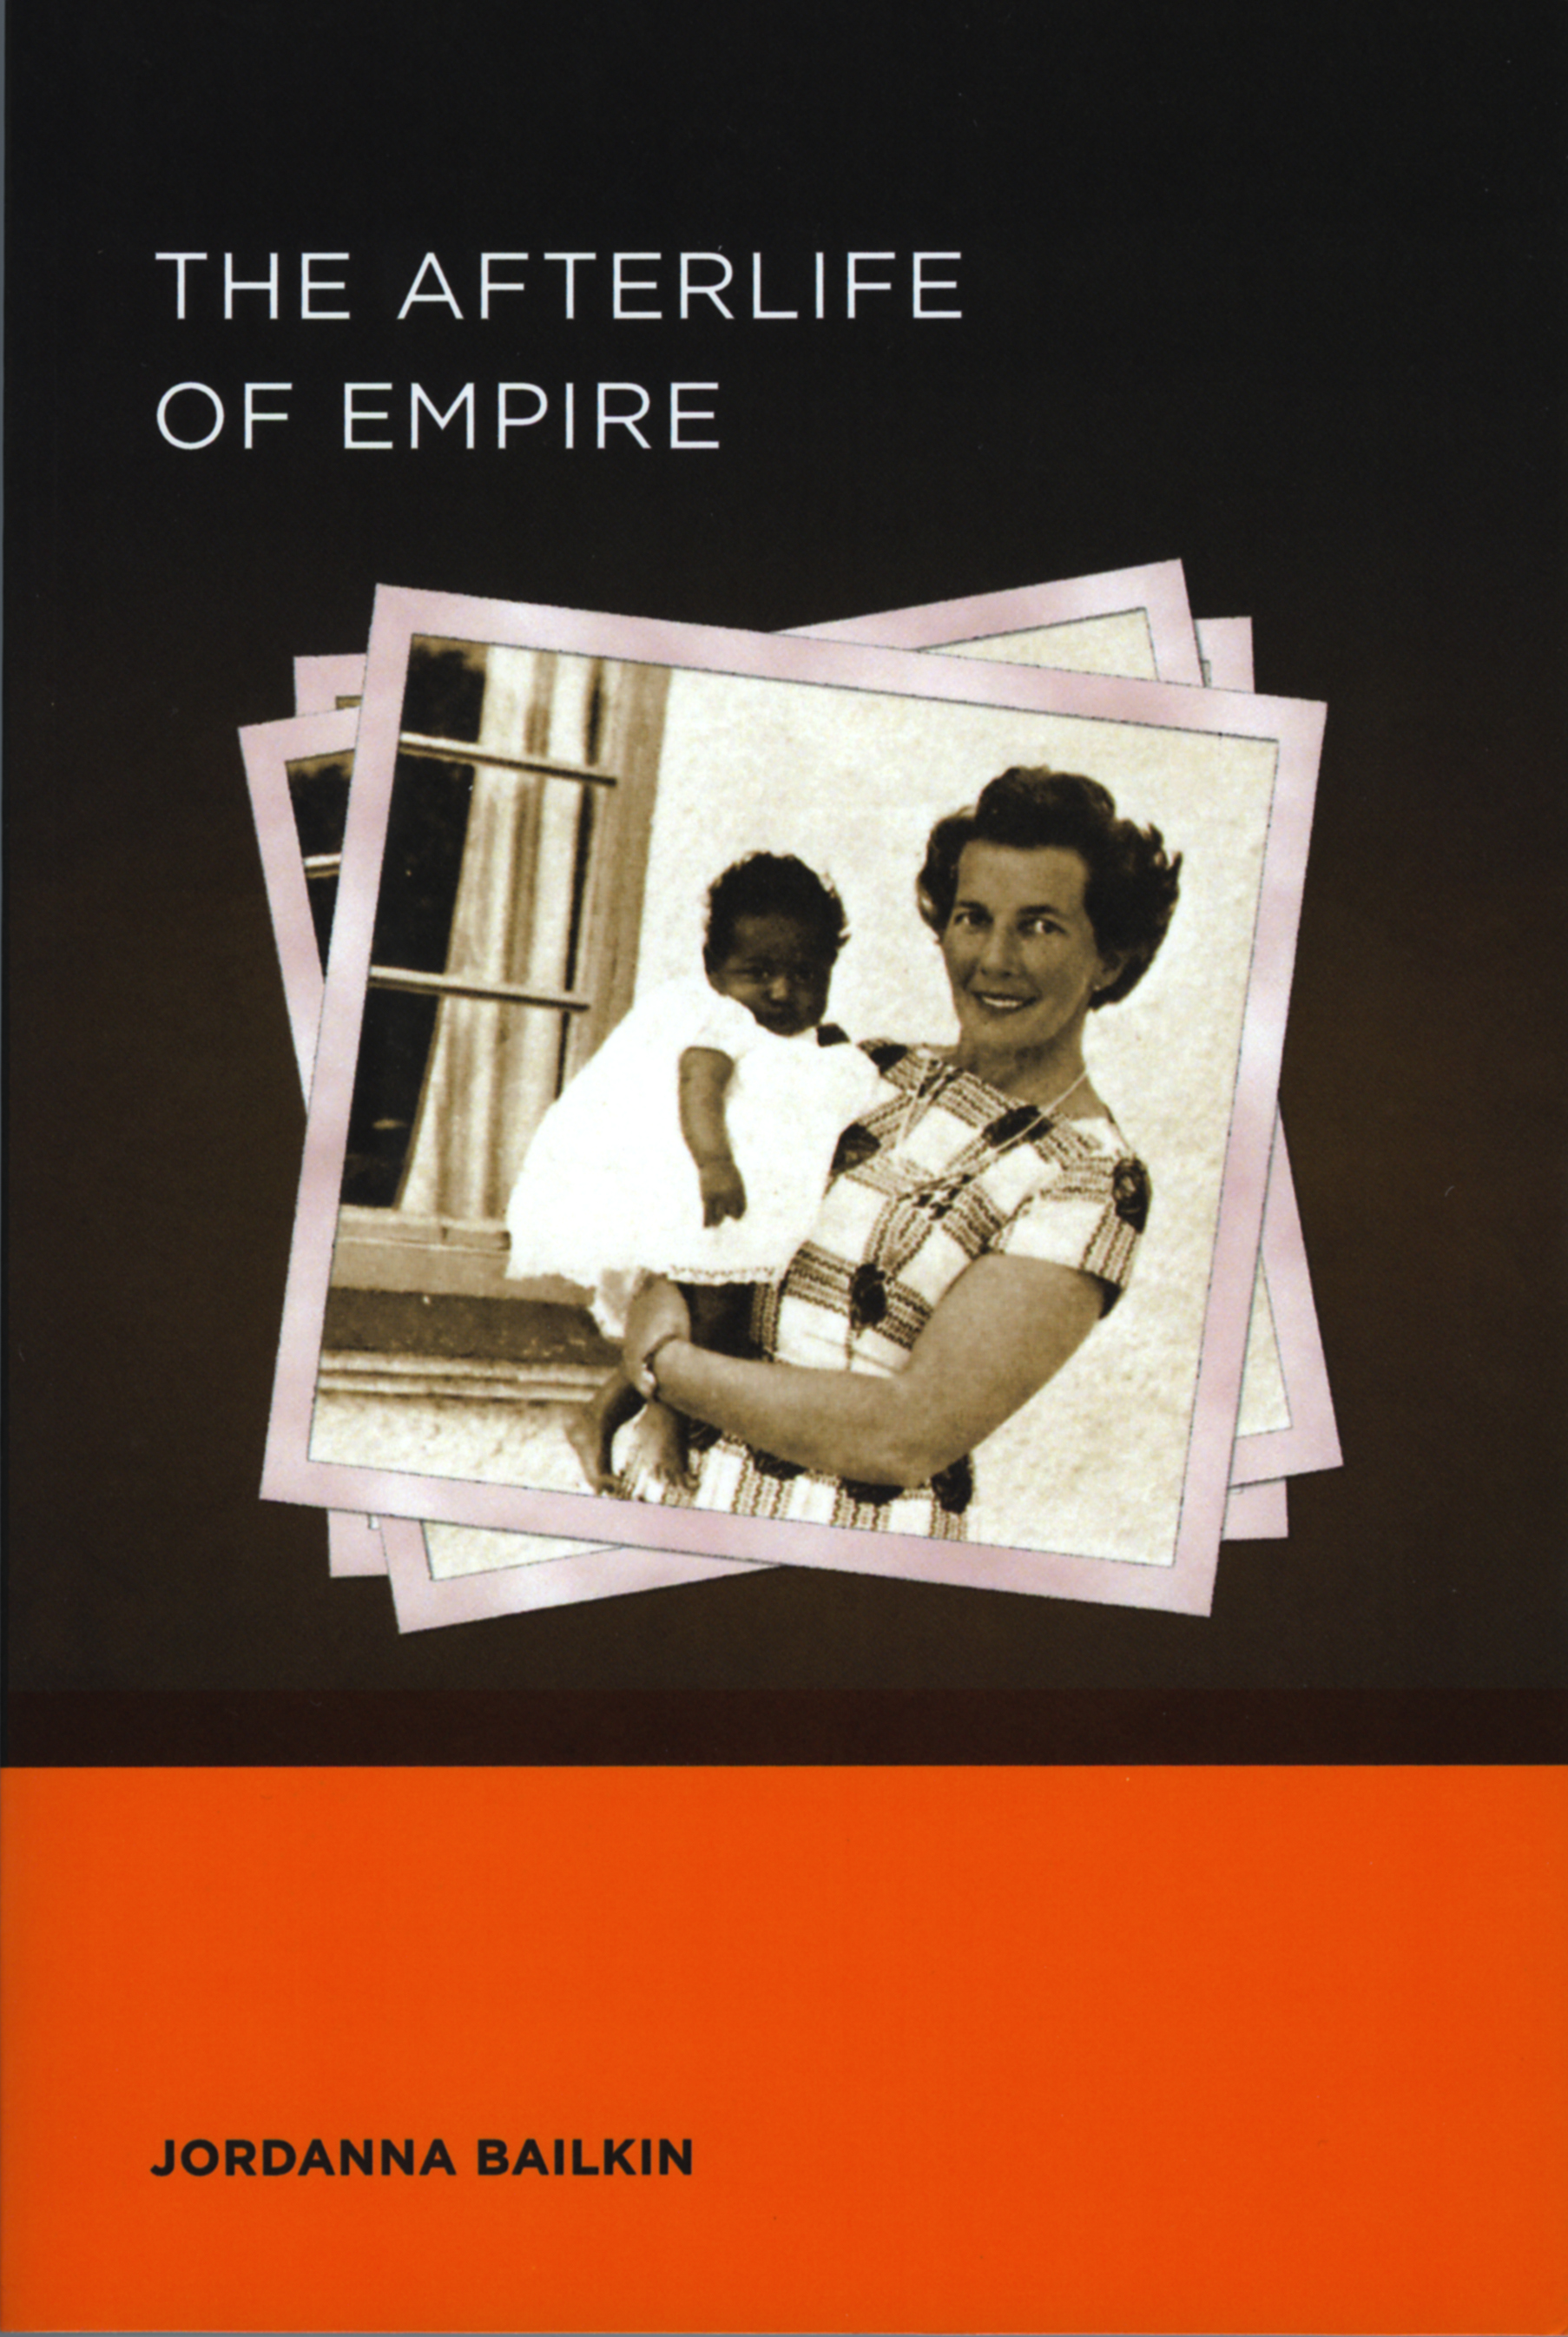 """The Afterlife of Empire"" was published in November 2012 by the University of California Press."